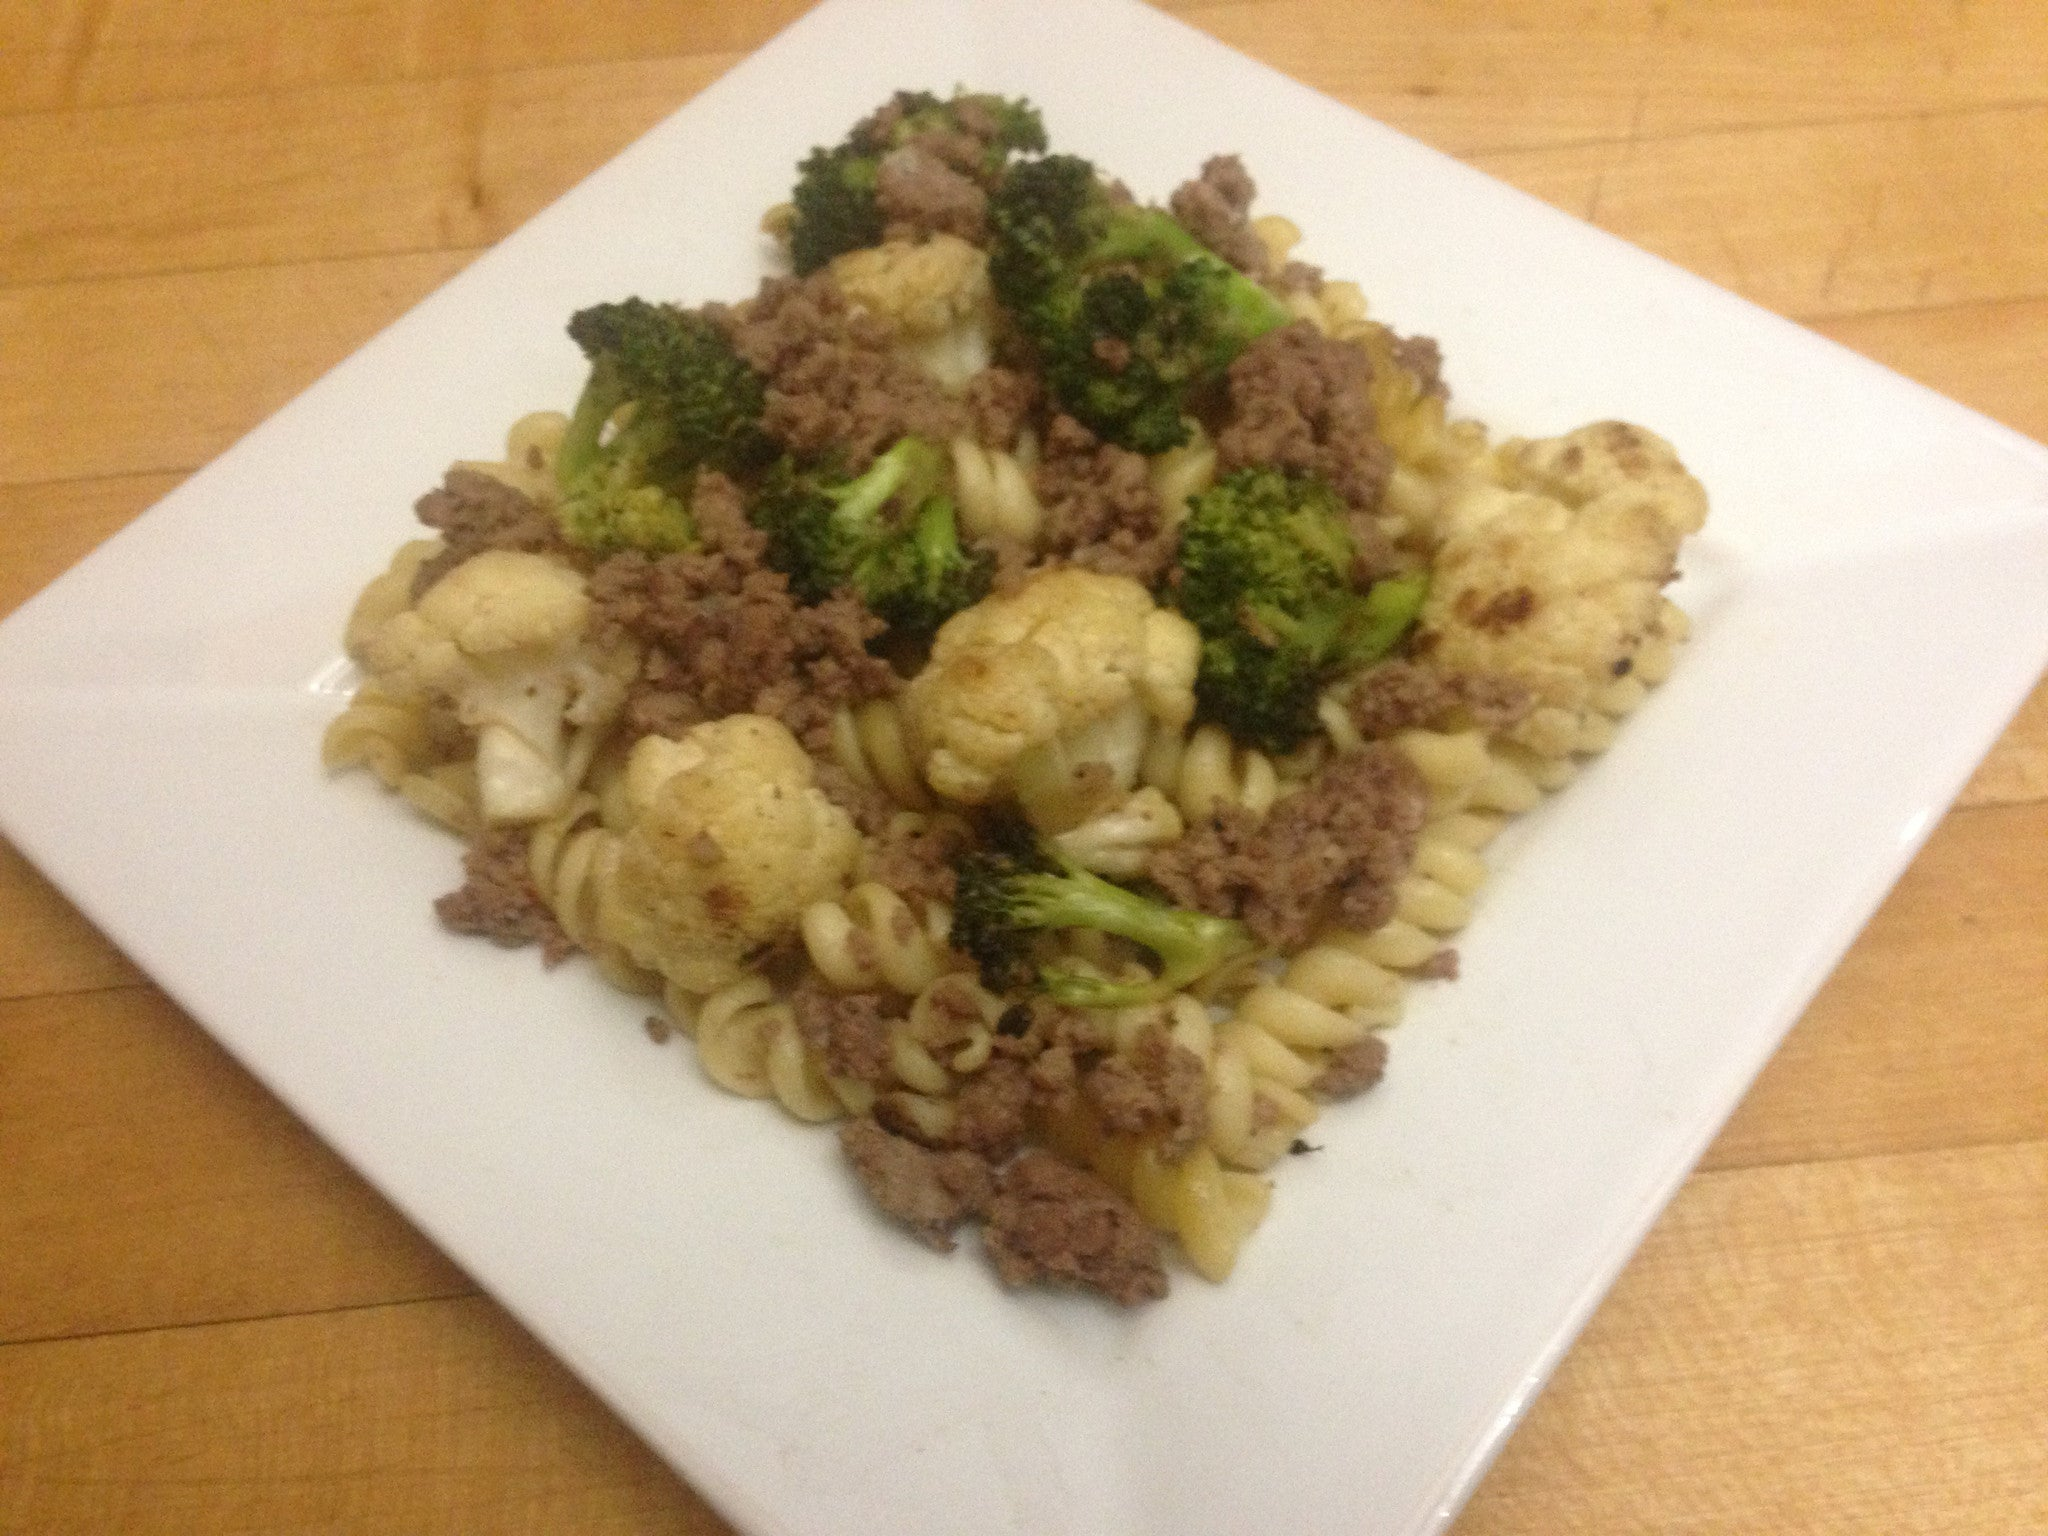 broccoli-&-cauliflower-pasta-with-ground-beef-skillit-simple-easy-recipes-dinner-skillet